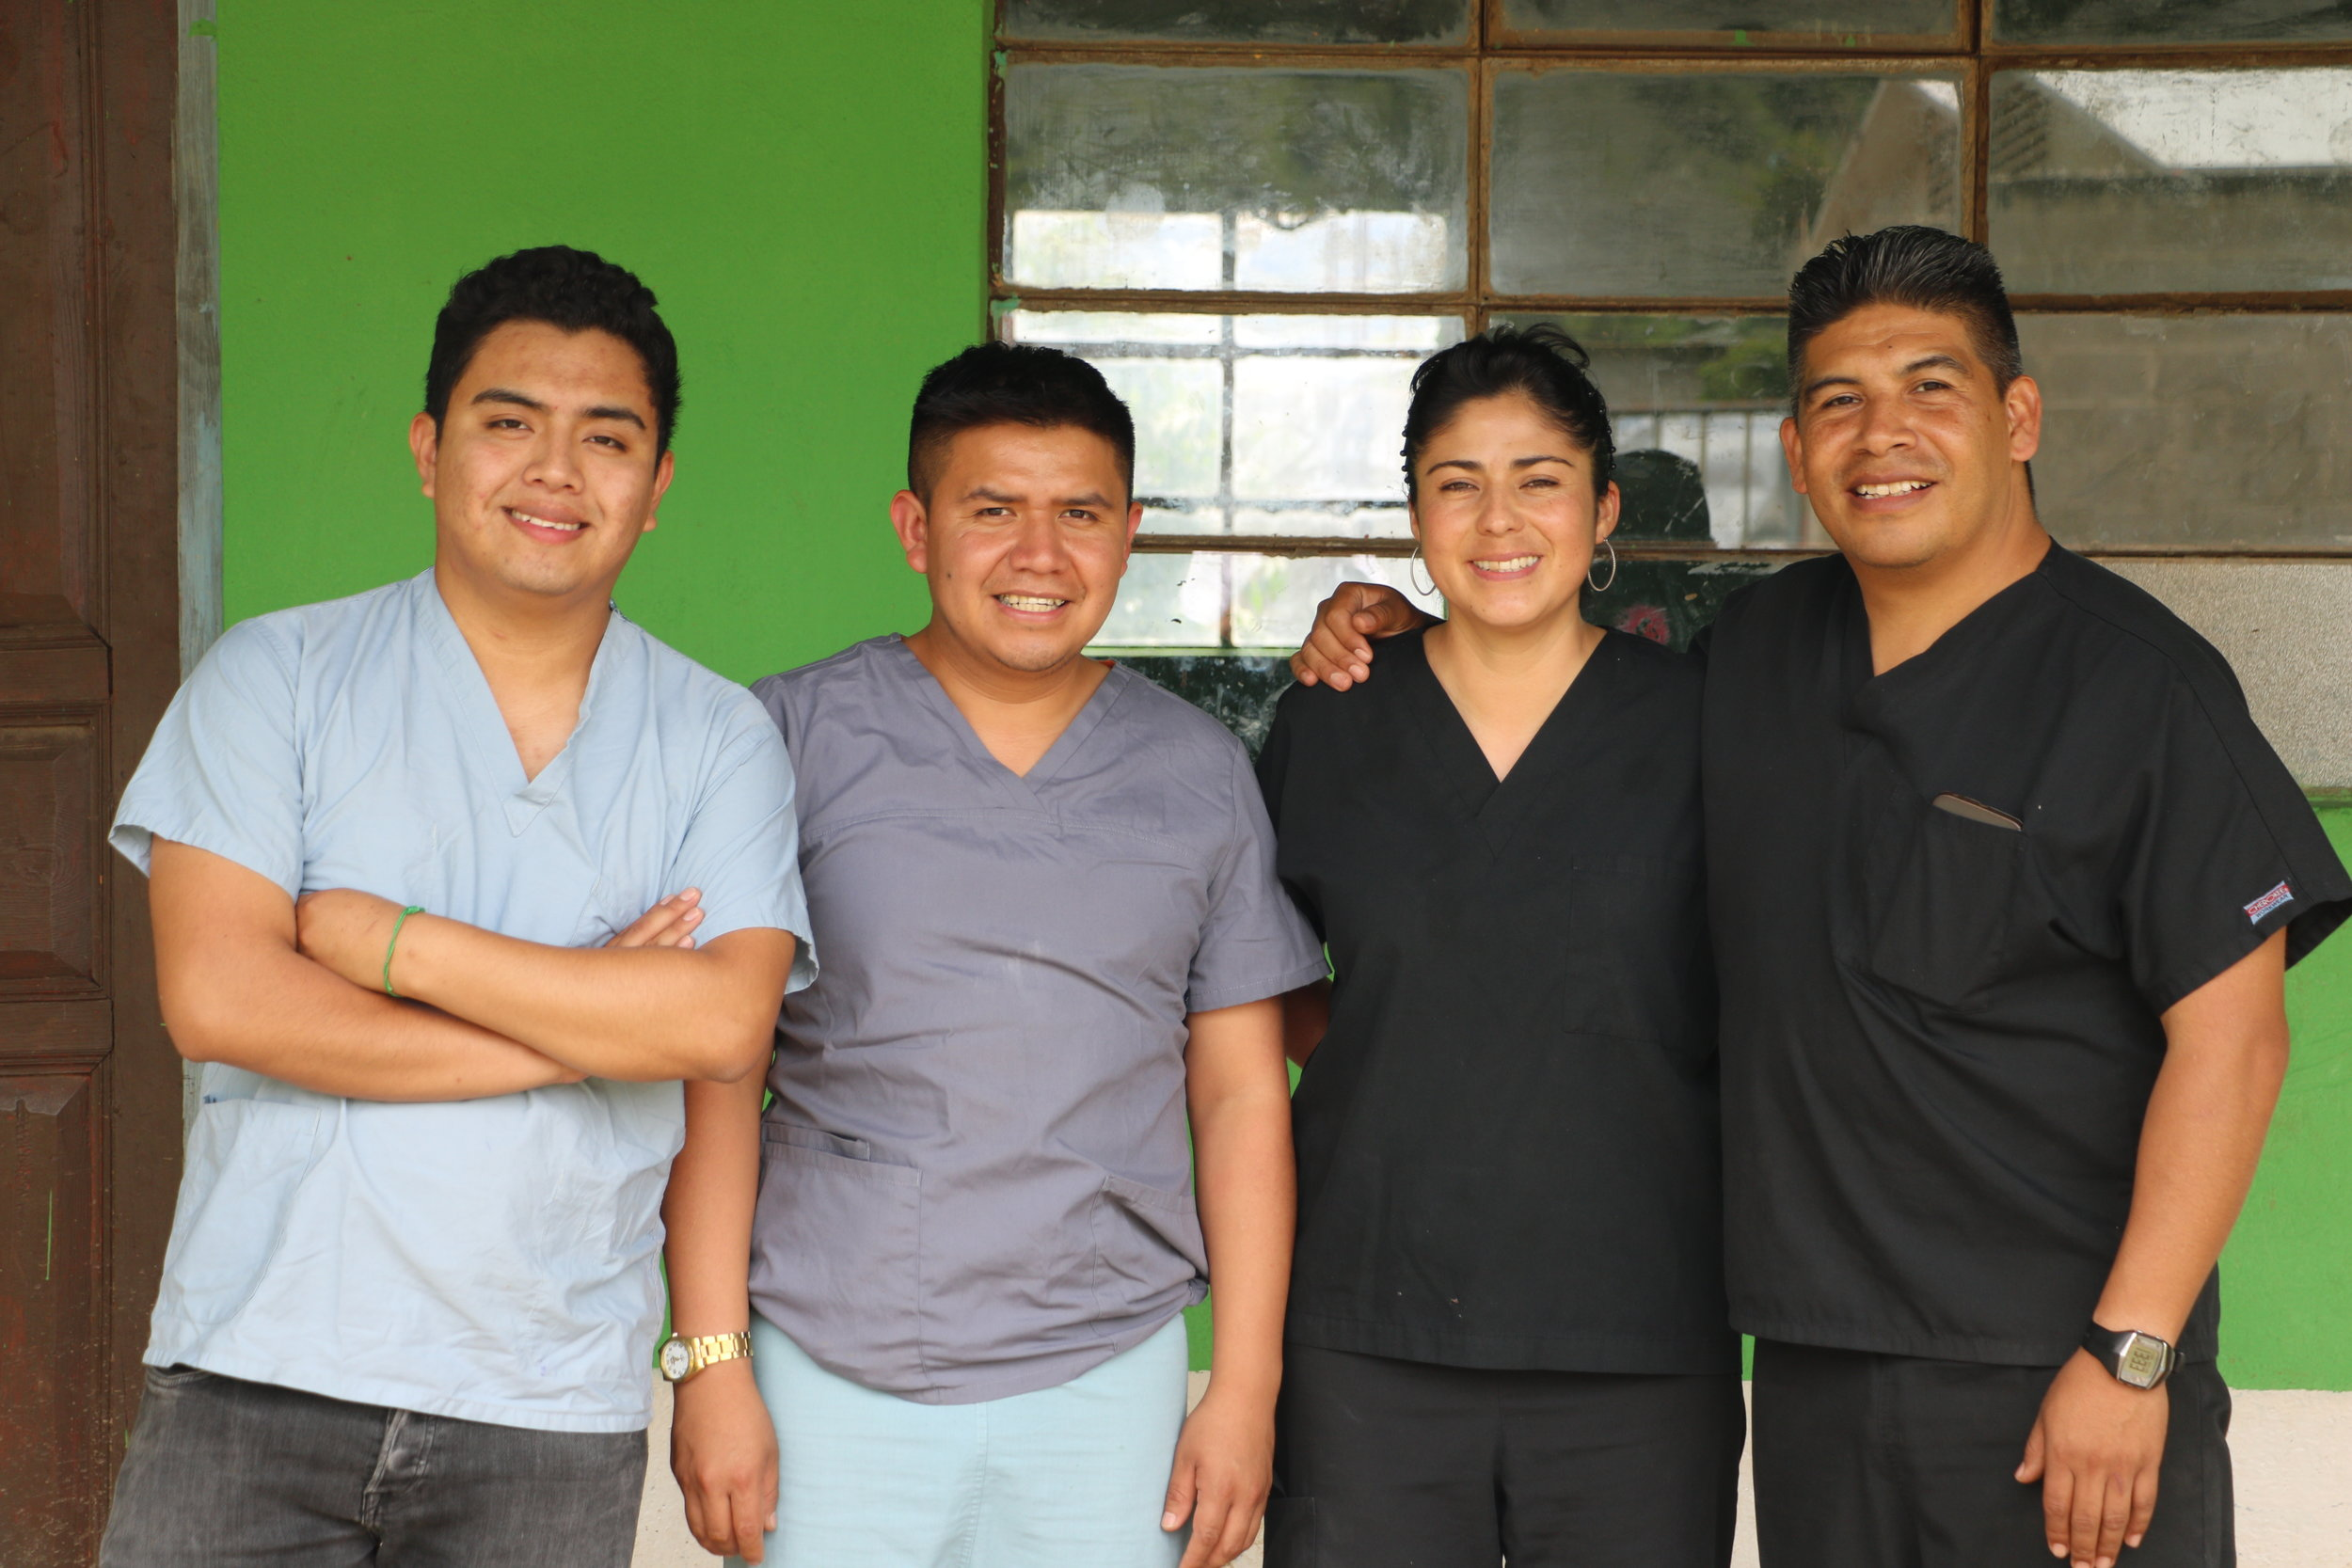 Otto and Miguel (physicians' assistants), and Lindsay and Paul